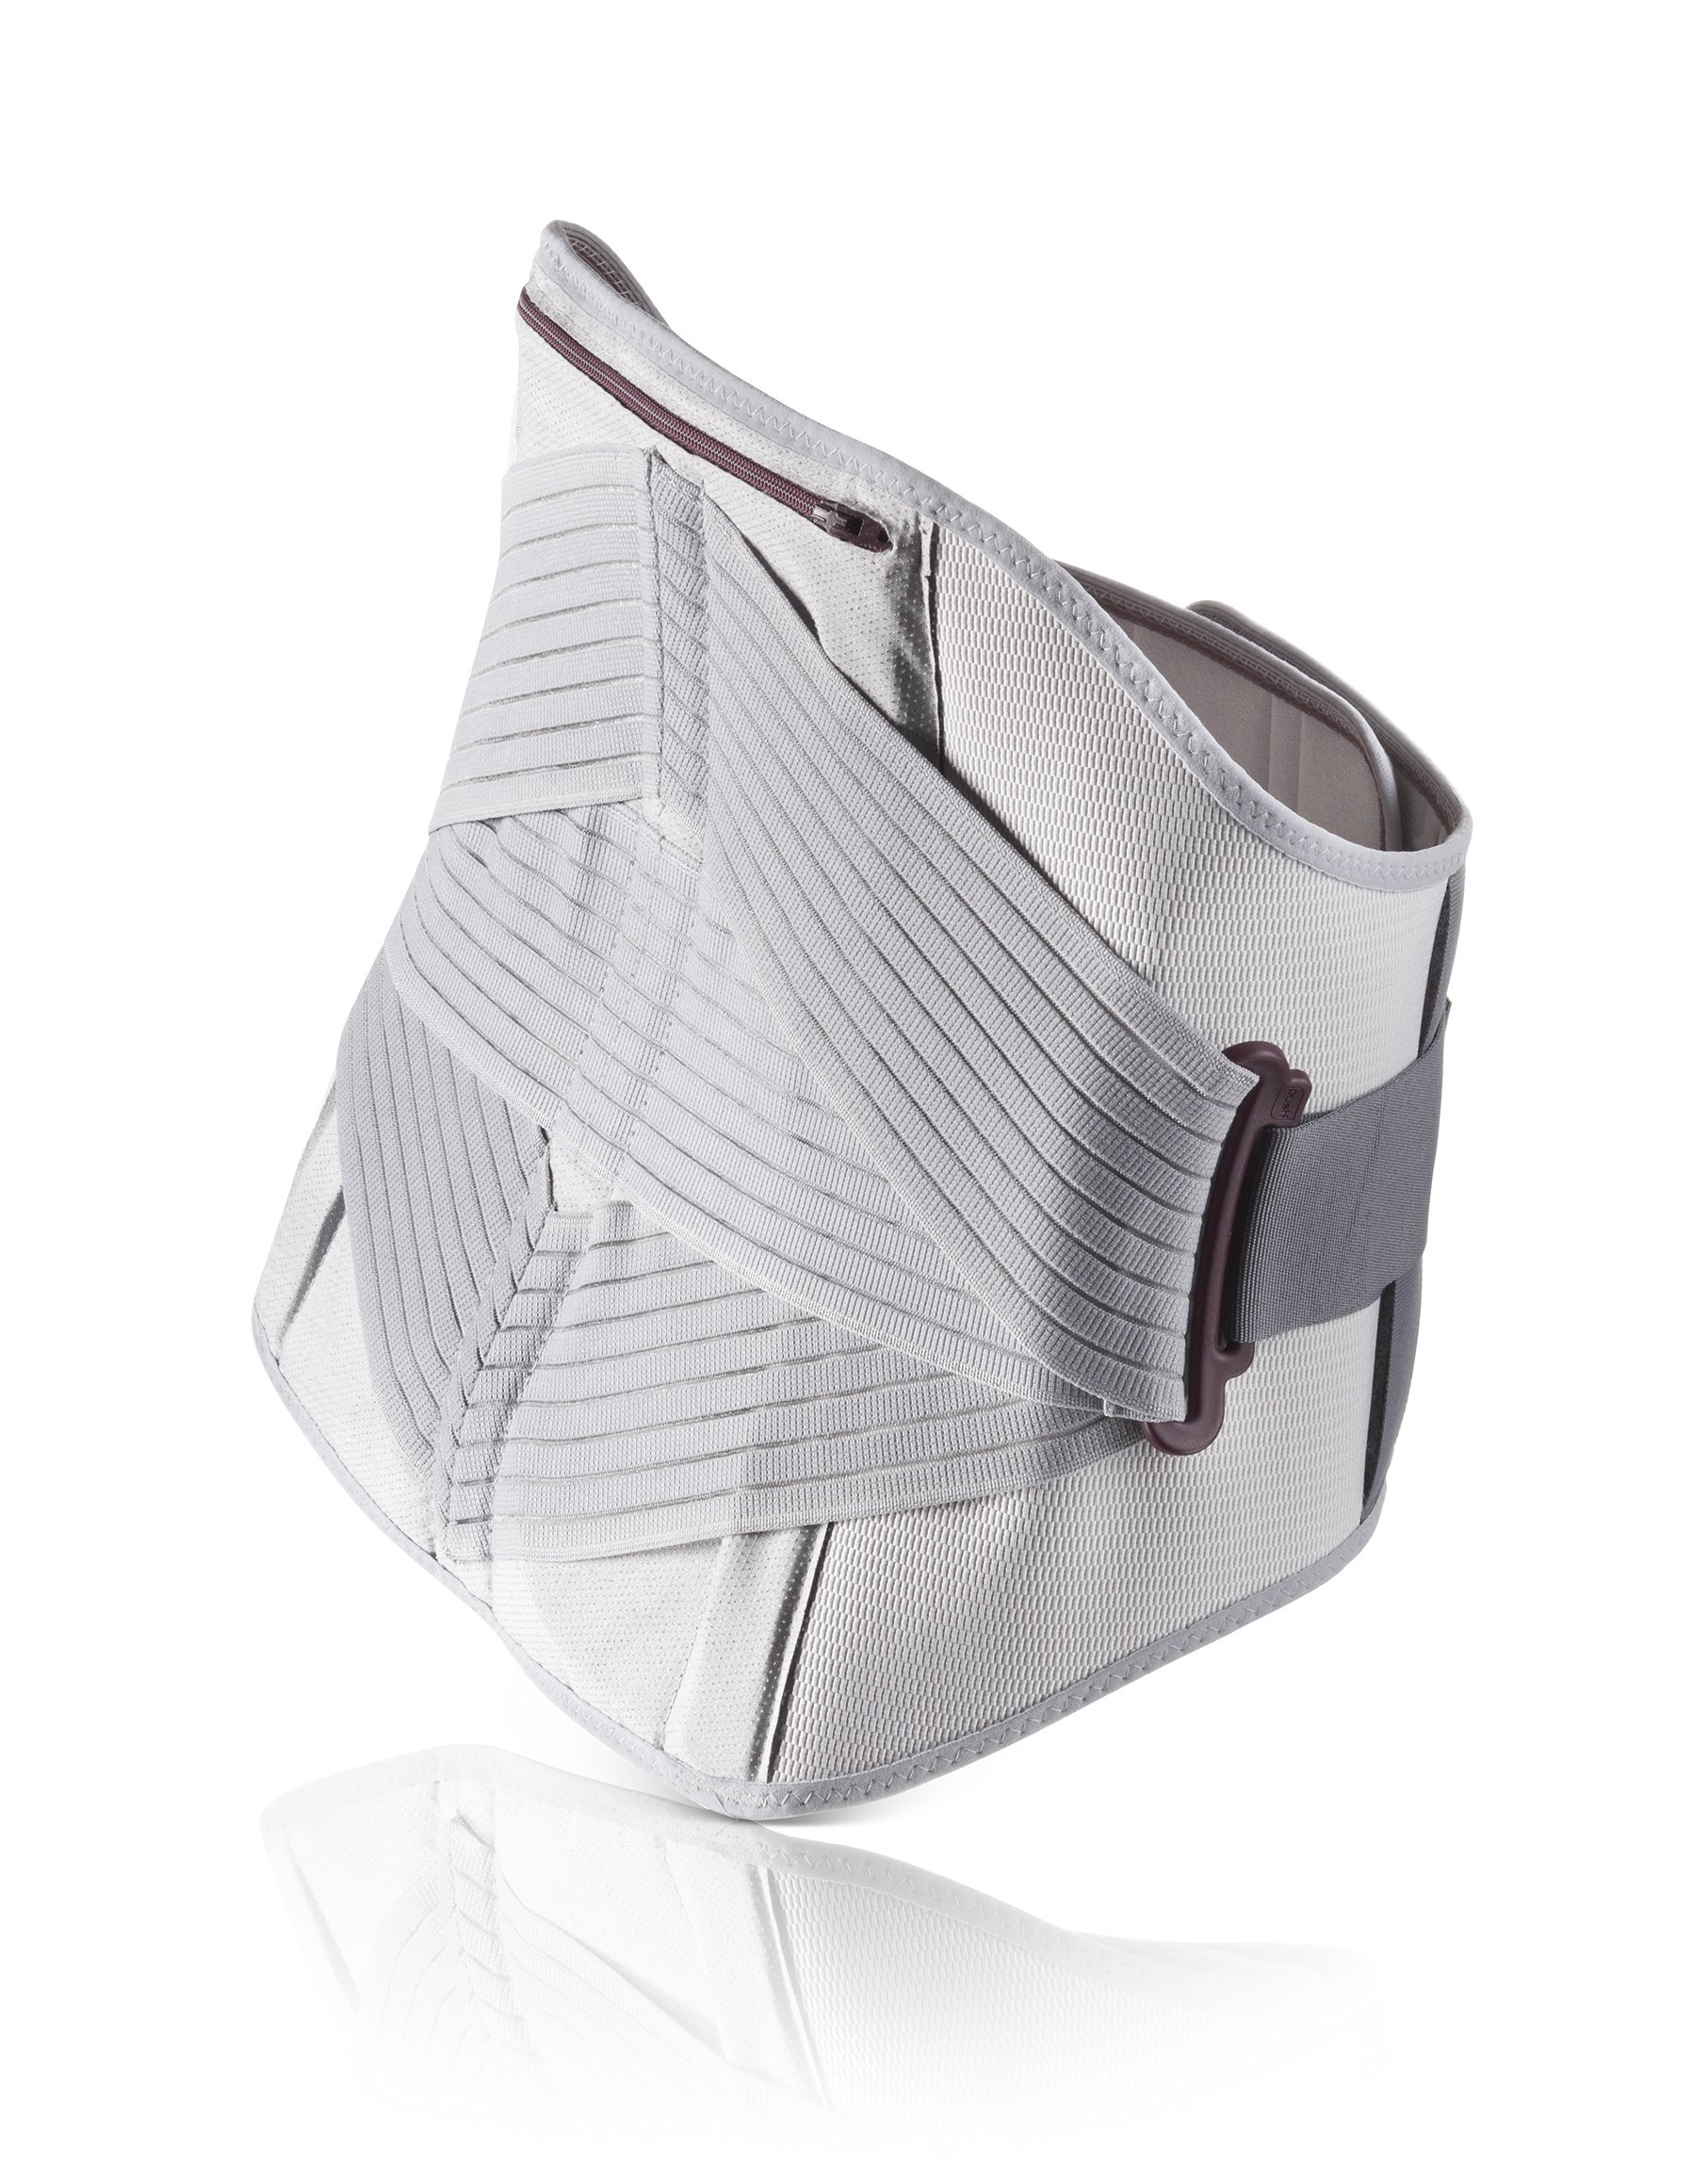 Push med Back Brace - Supports The Lower Back and Reduces Pain (Size 2)